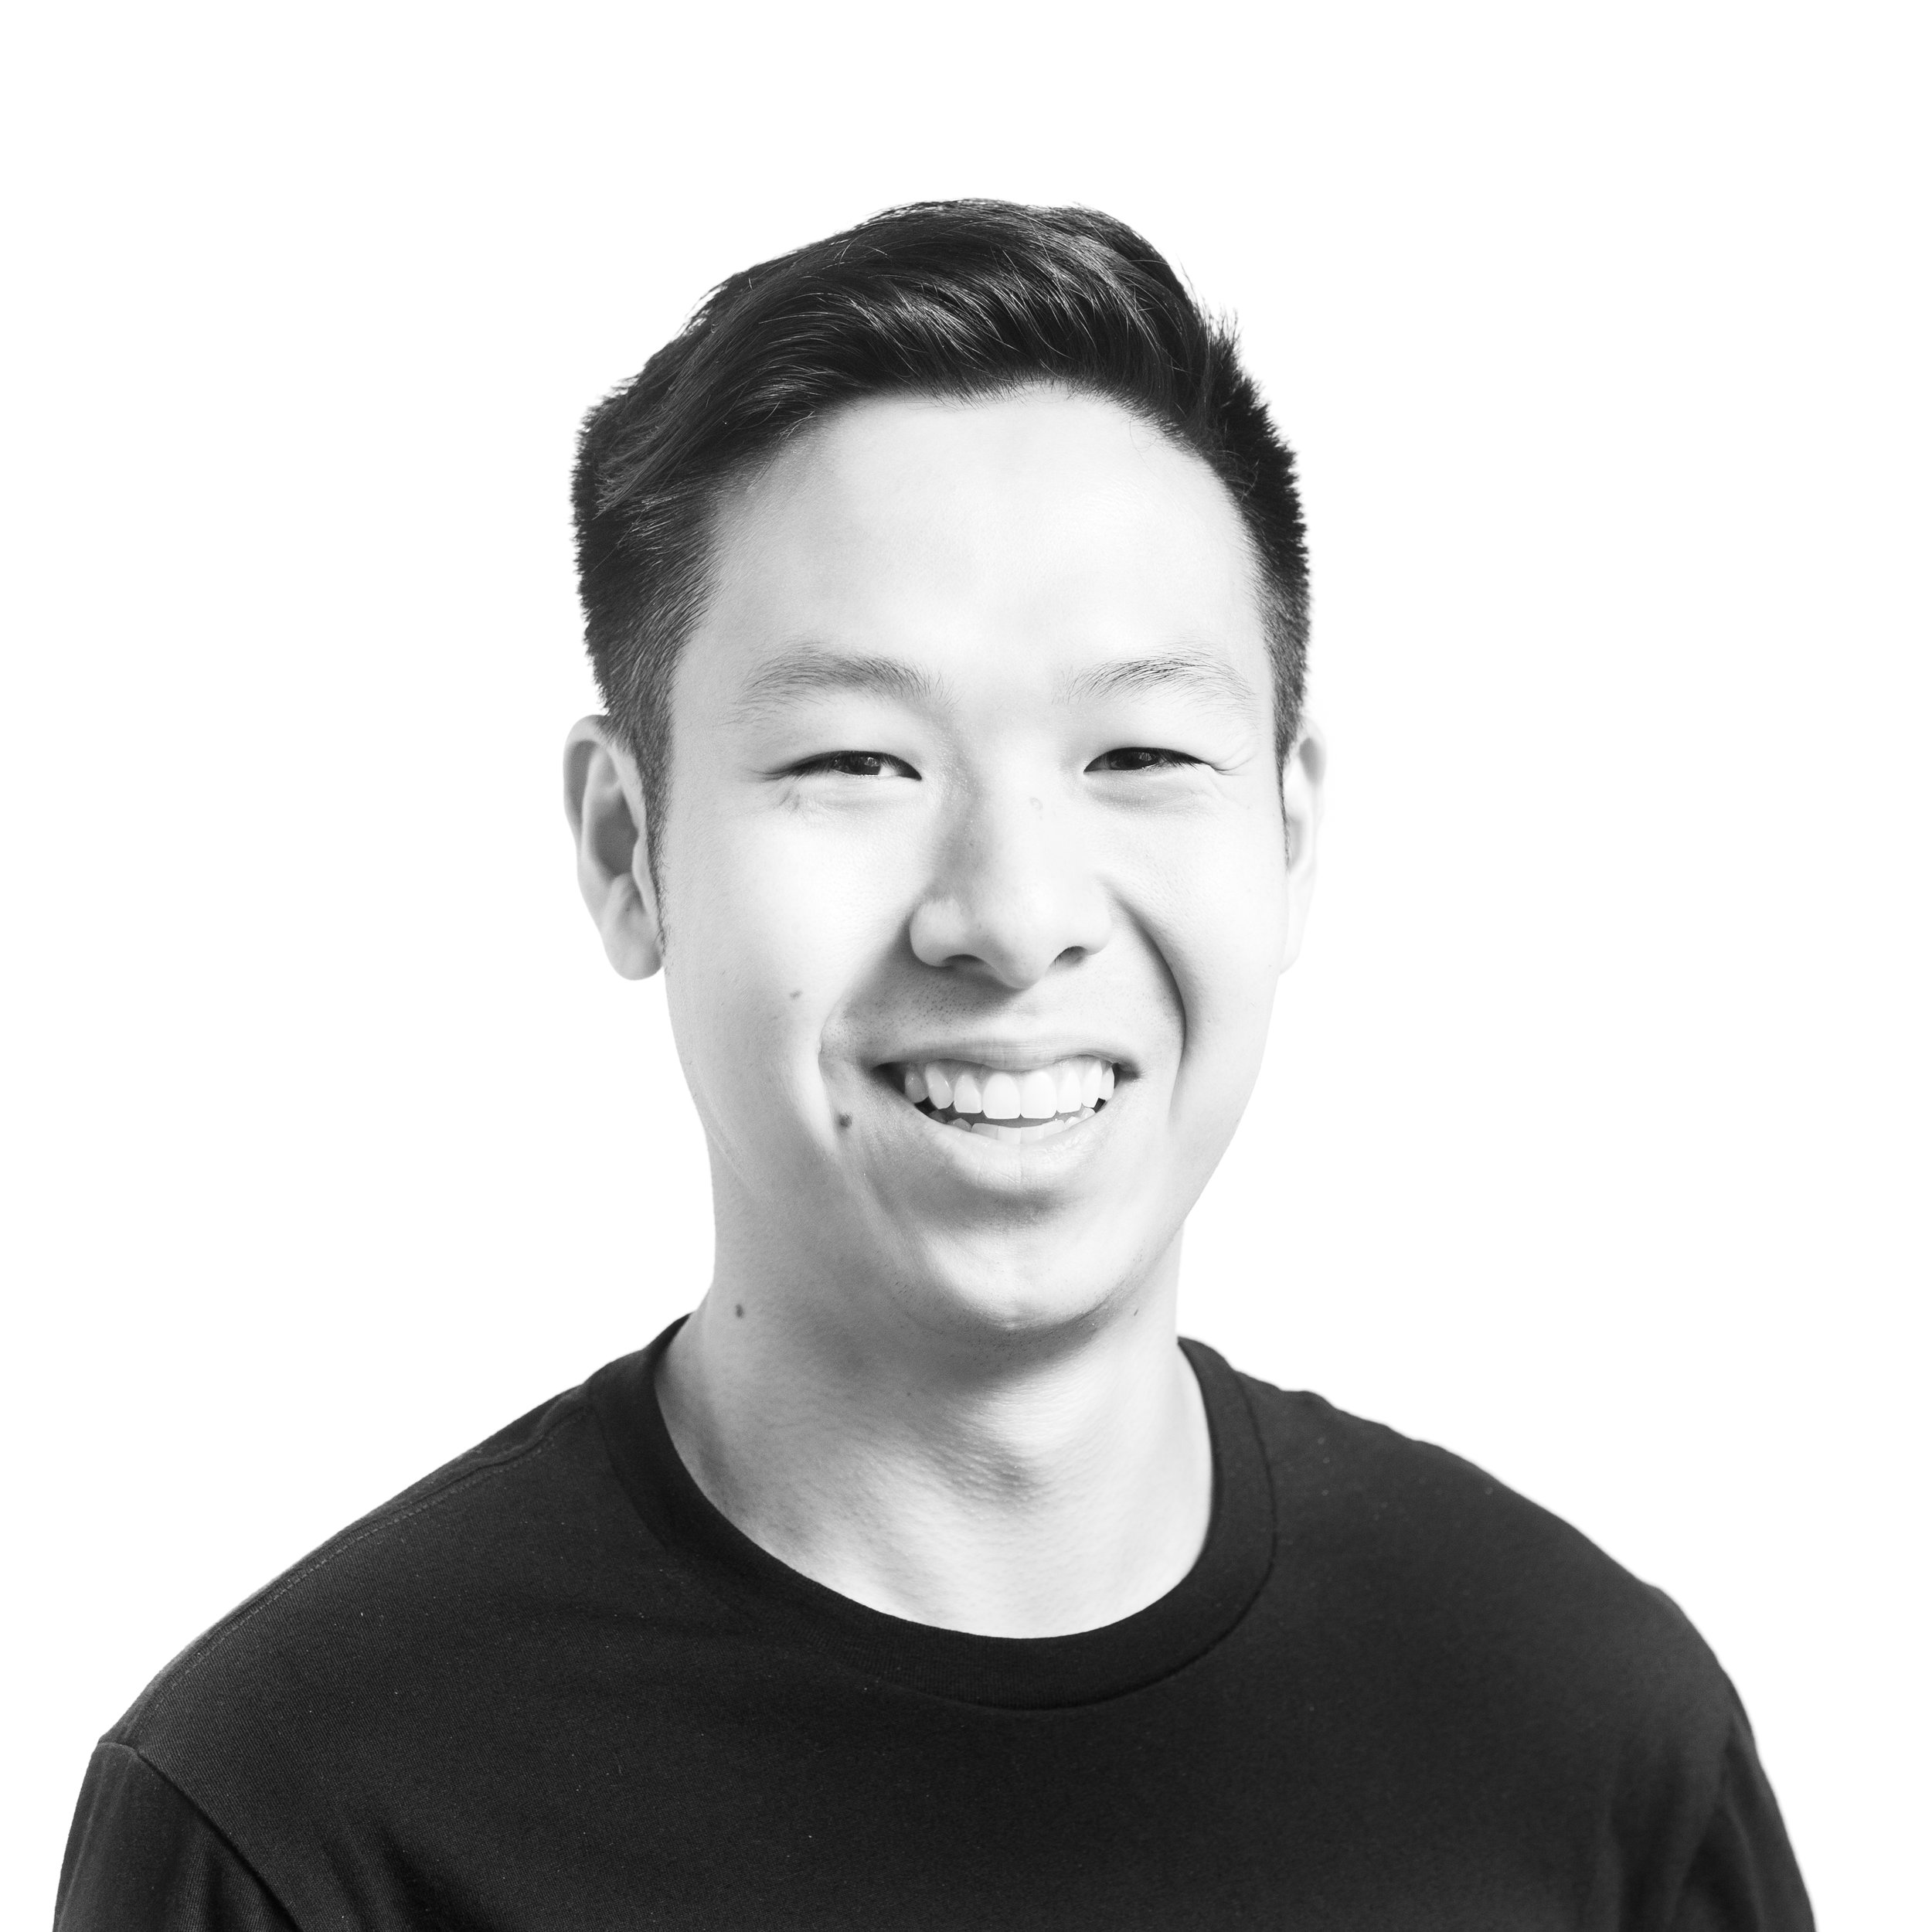 Jay Kurahashi-Sofue  Marketing  Jay was a digital transformation and brand consultant at Ogilvy and also has experience on strategy teams at BBDO, MRM // McCann, and phd Worldwide. Jay is a graduate of Indiana University with a degree in Art History.   LinkedIn  |  Twitter